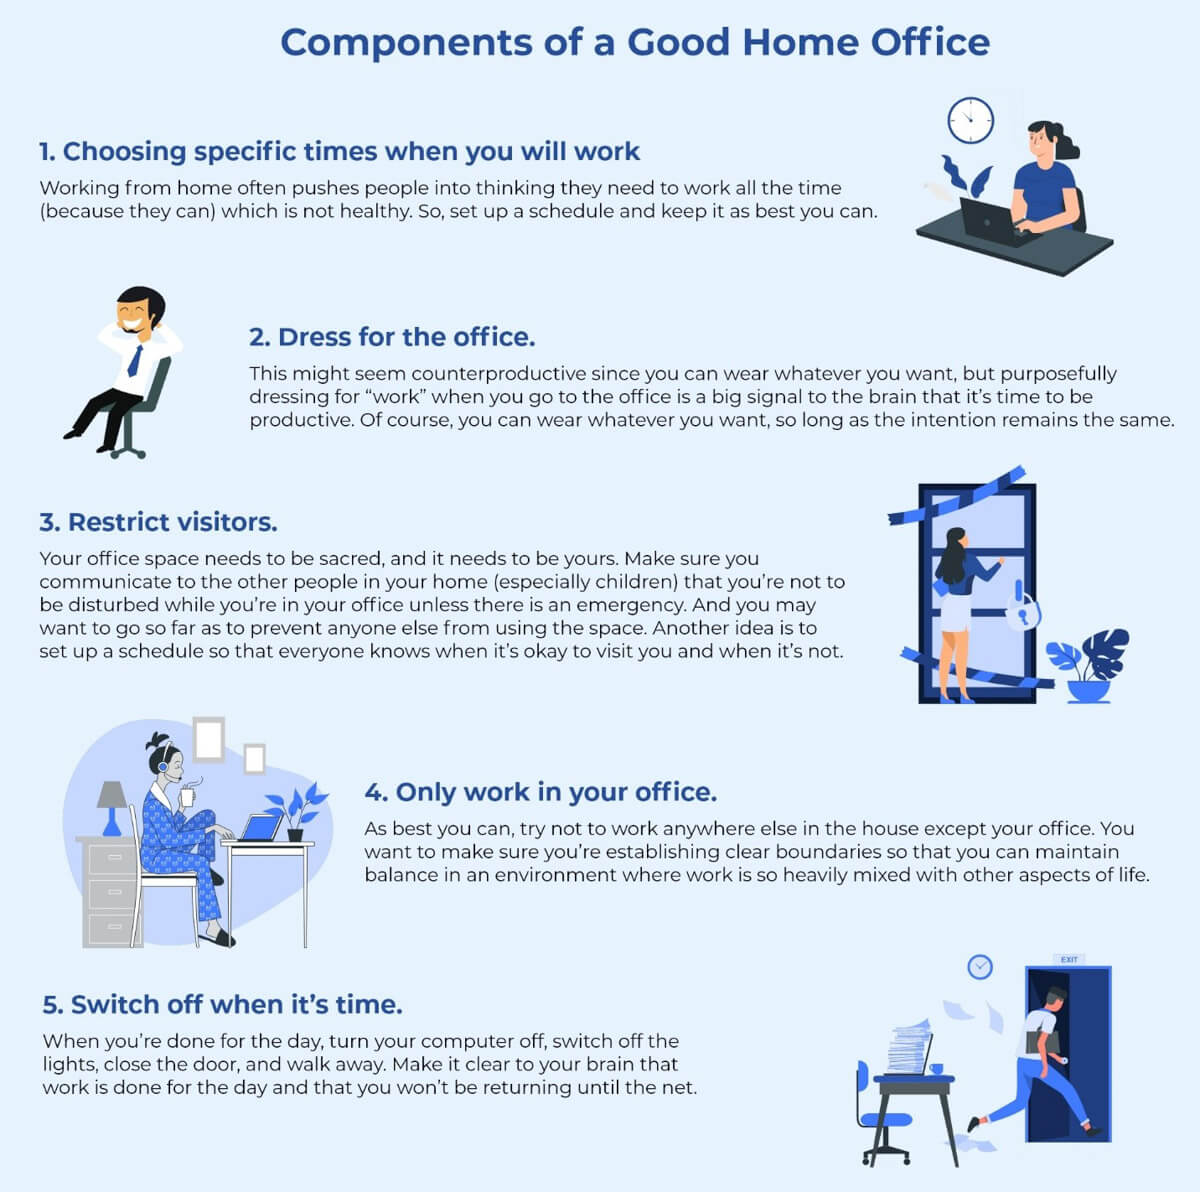 Components of a Good Home Office 2 1